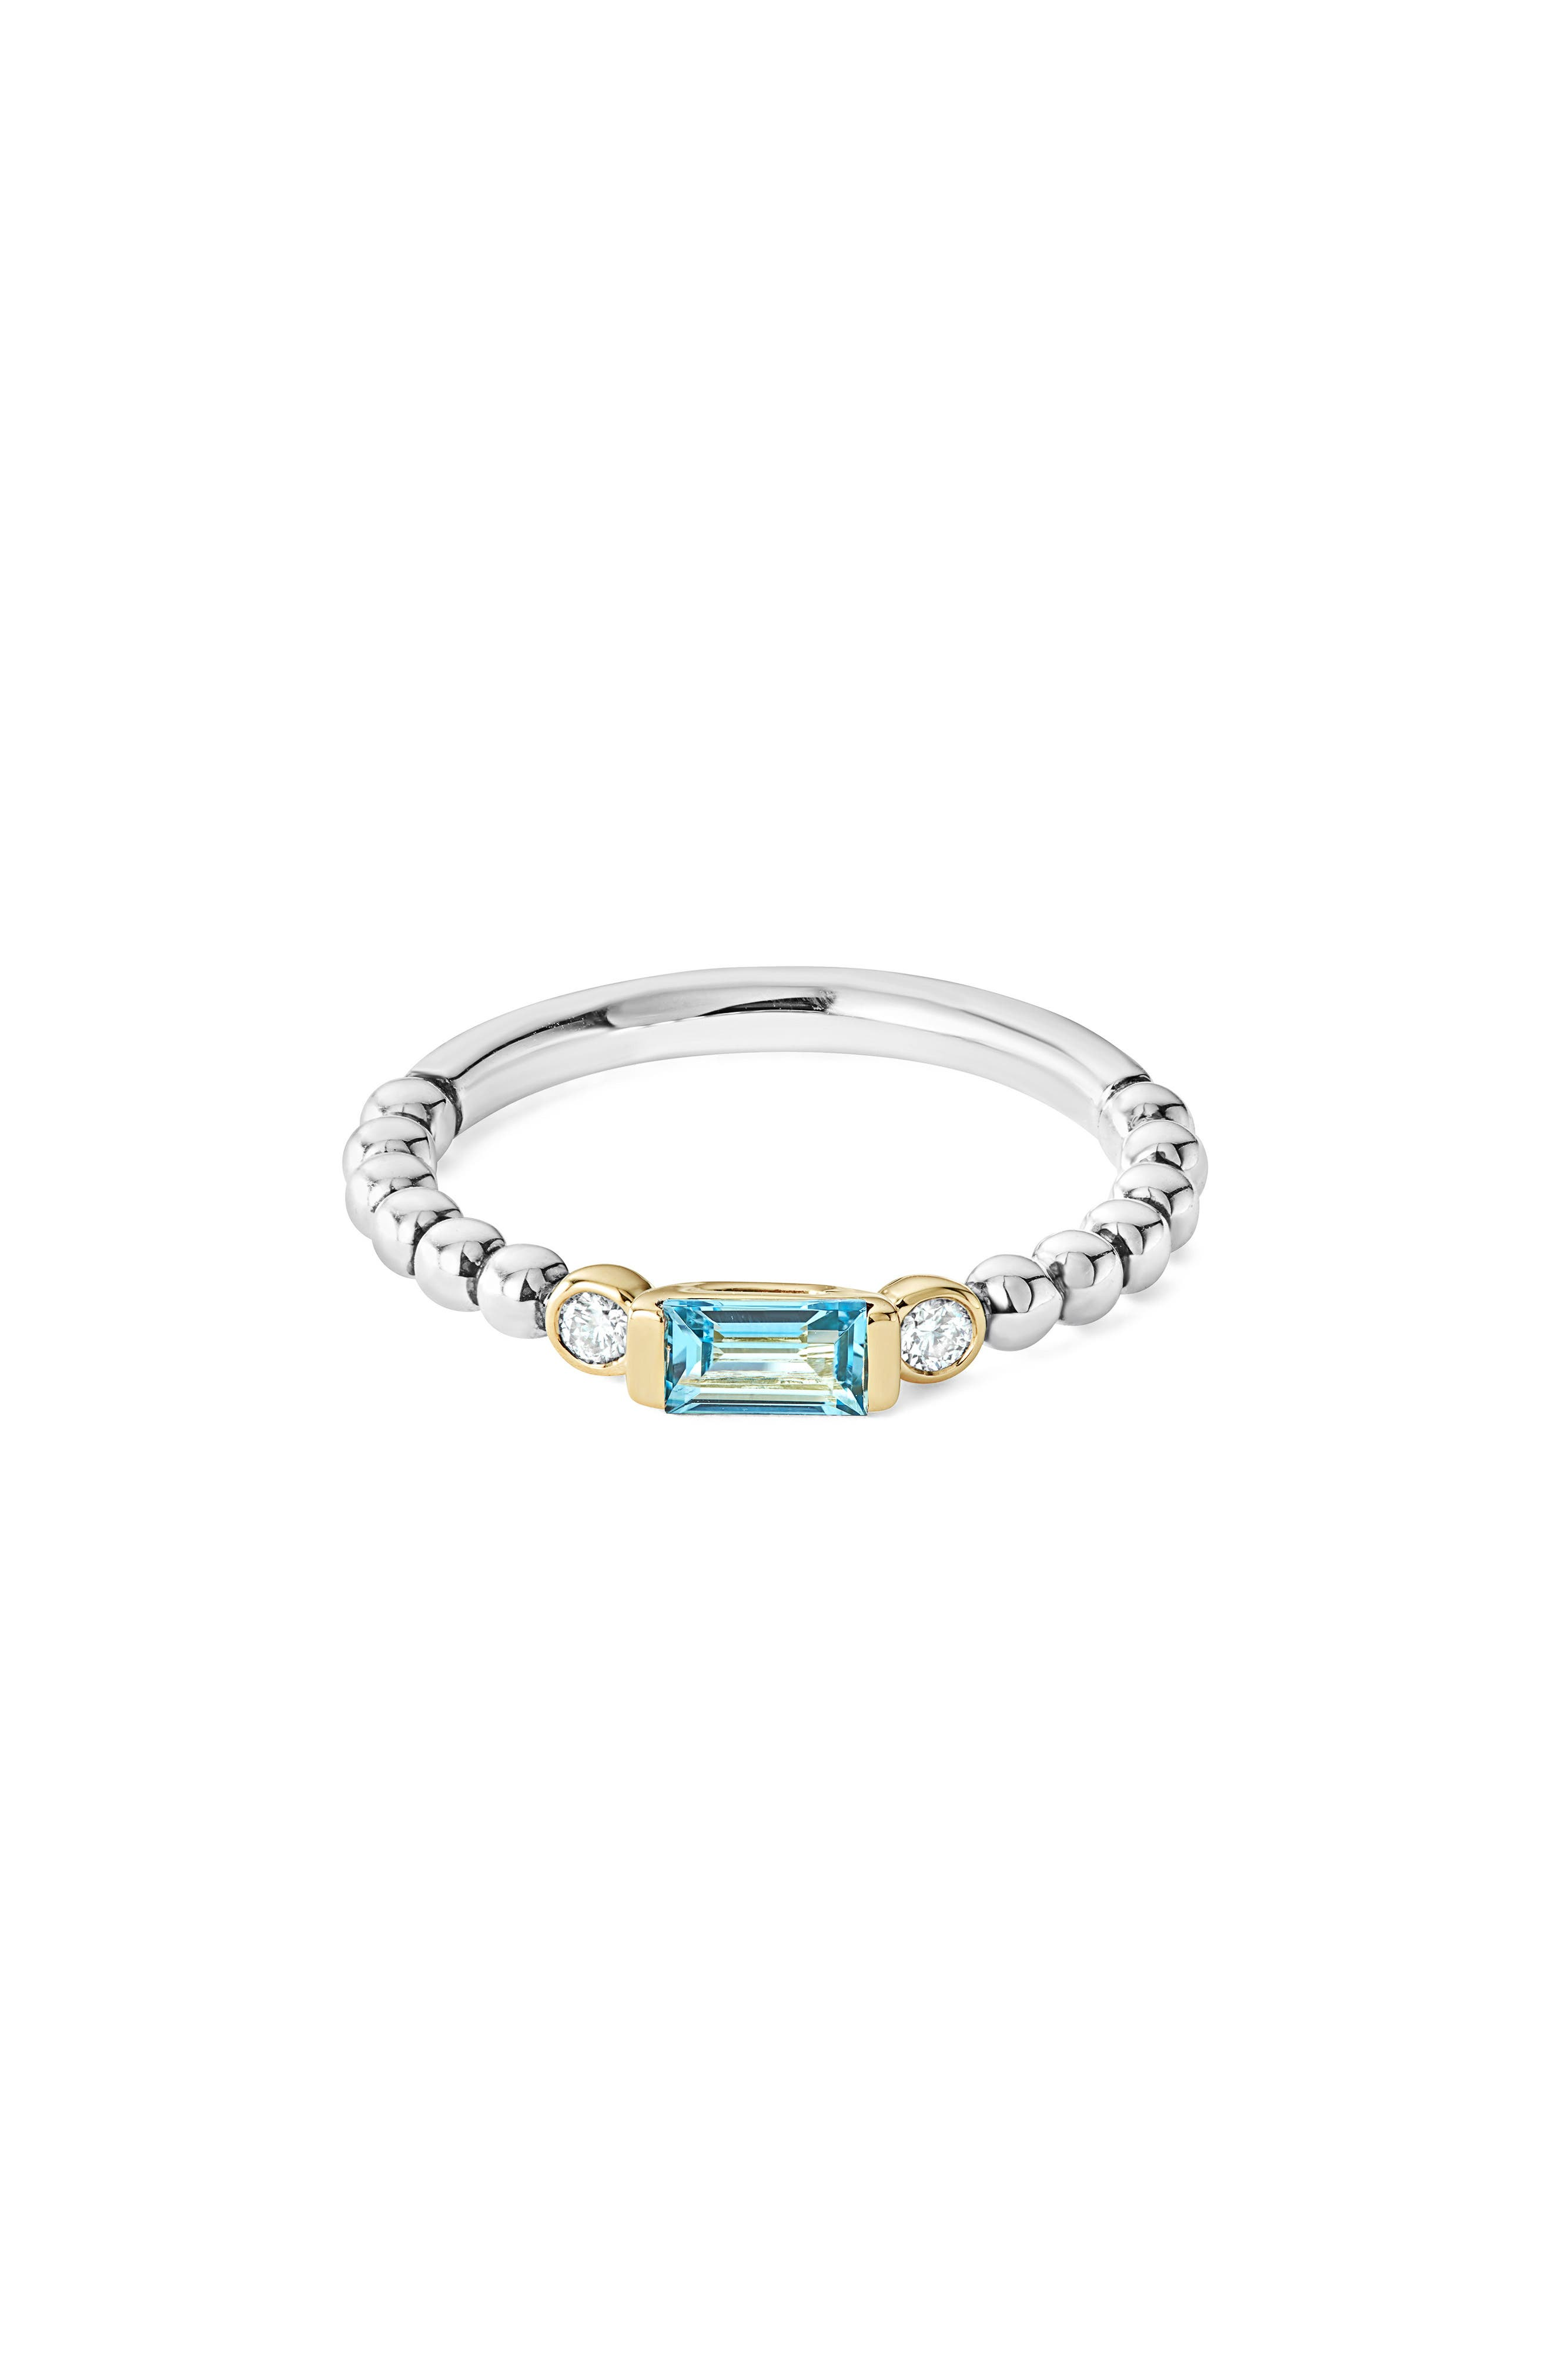 Main Image - LAGOS Gemstone Baguette and Diamond Beaded Band Ring